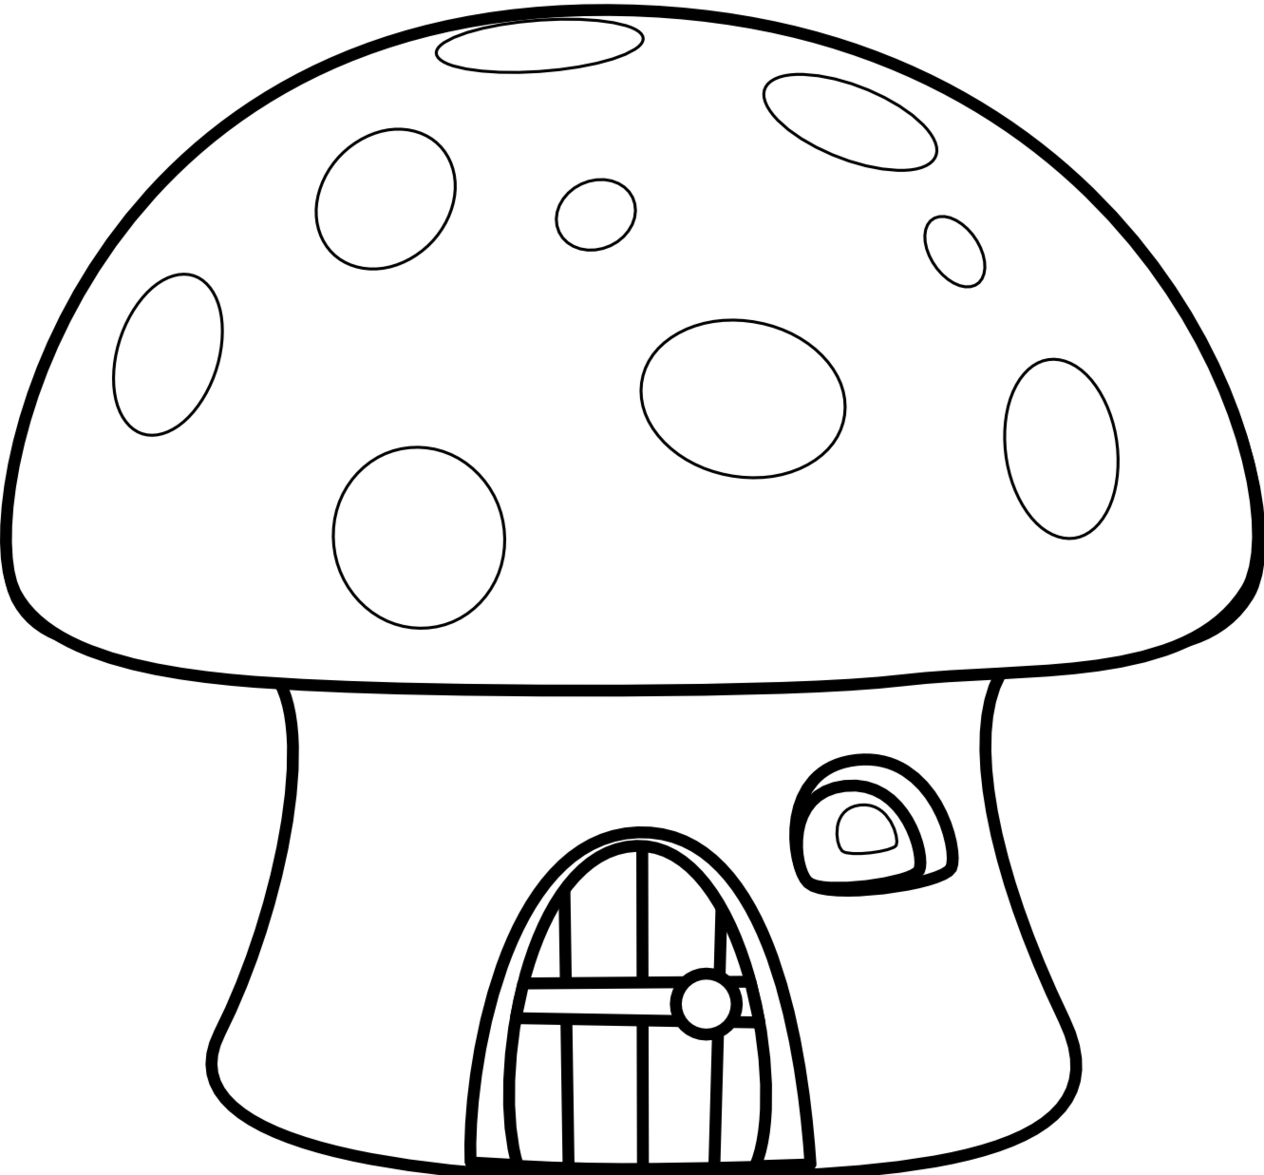 Drawing mushrooms black and white. Collection of mushroom